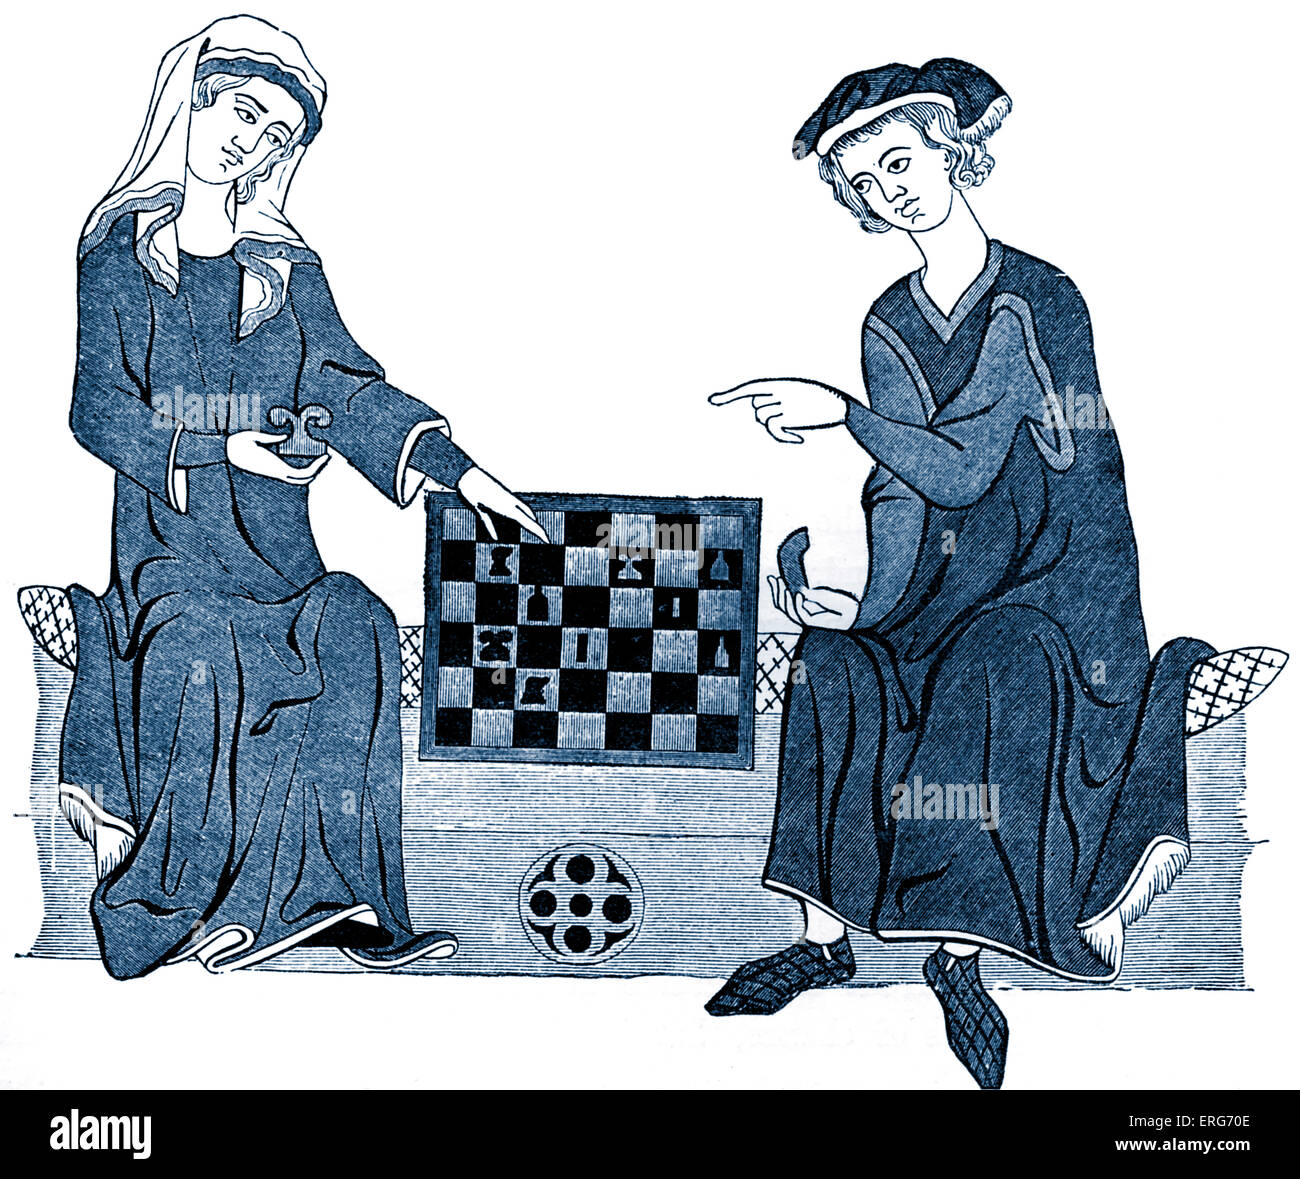 Chess players, reproduced from a thirteenth century miniature. Stock Photo